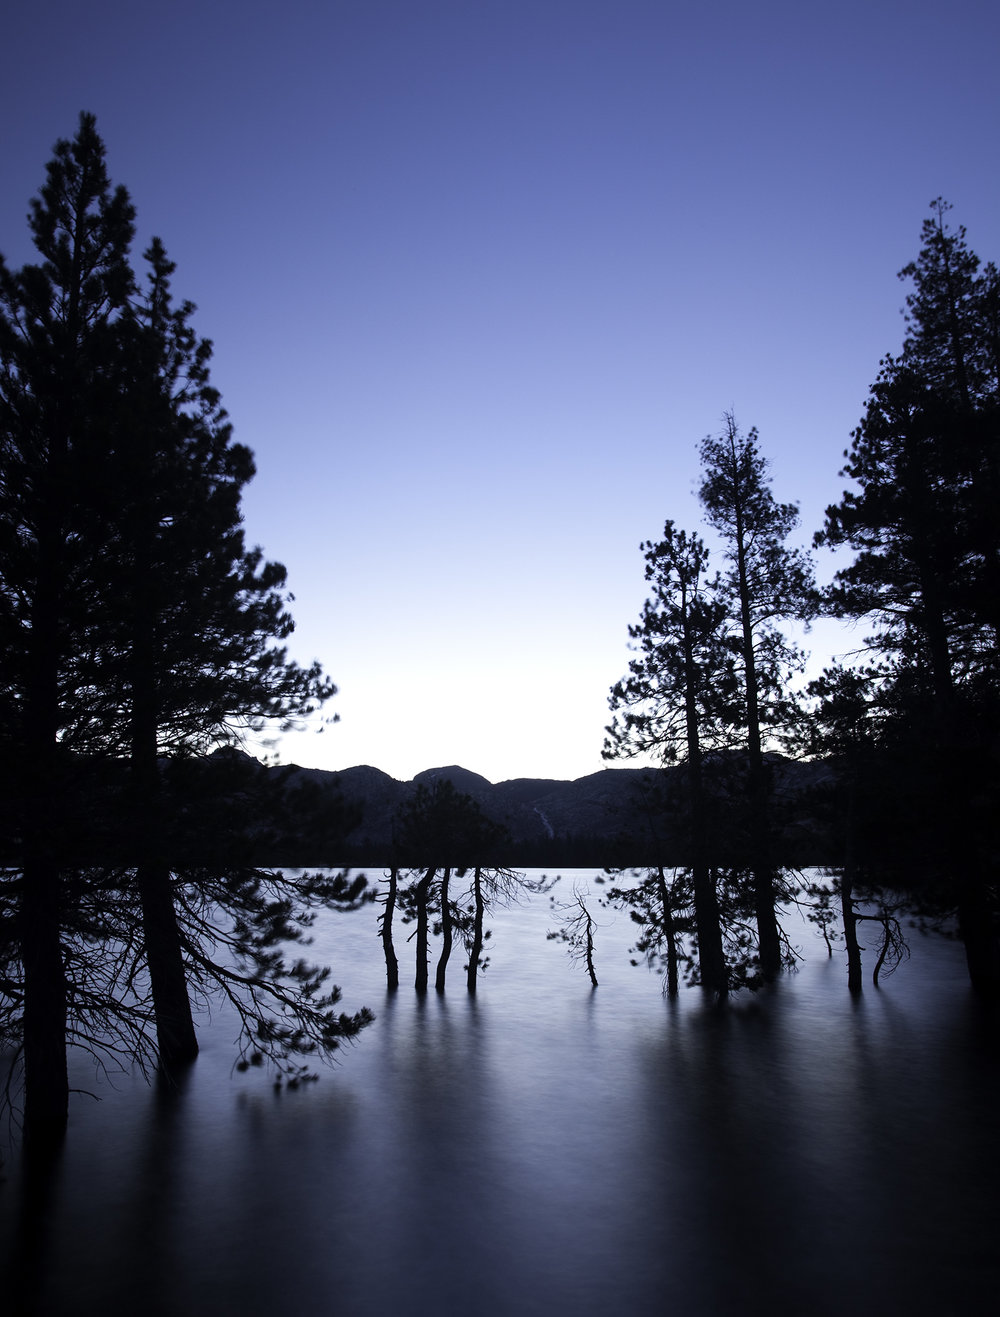 yosemite_lake_tree_0531.jpg